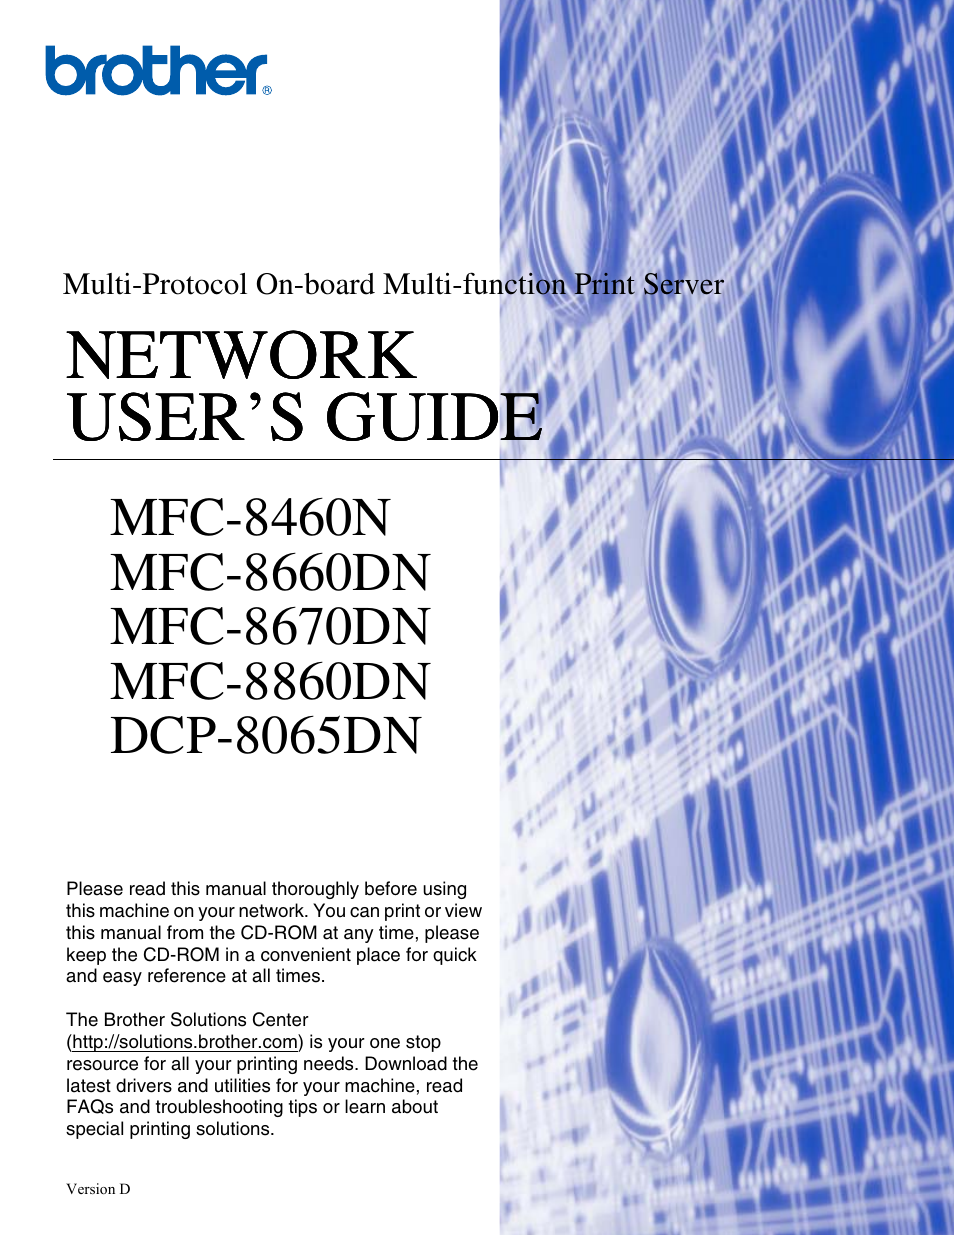 Pdf-3427] brother mfc 8460n mfc 8860dn mfc 8870dw service manual.